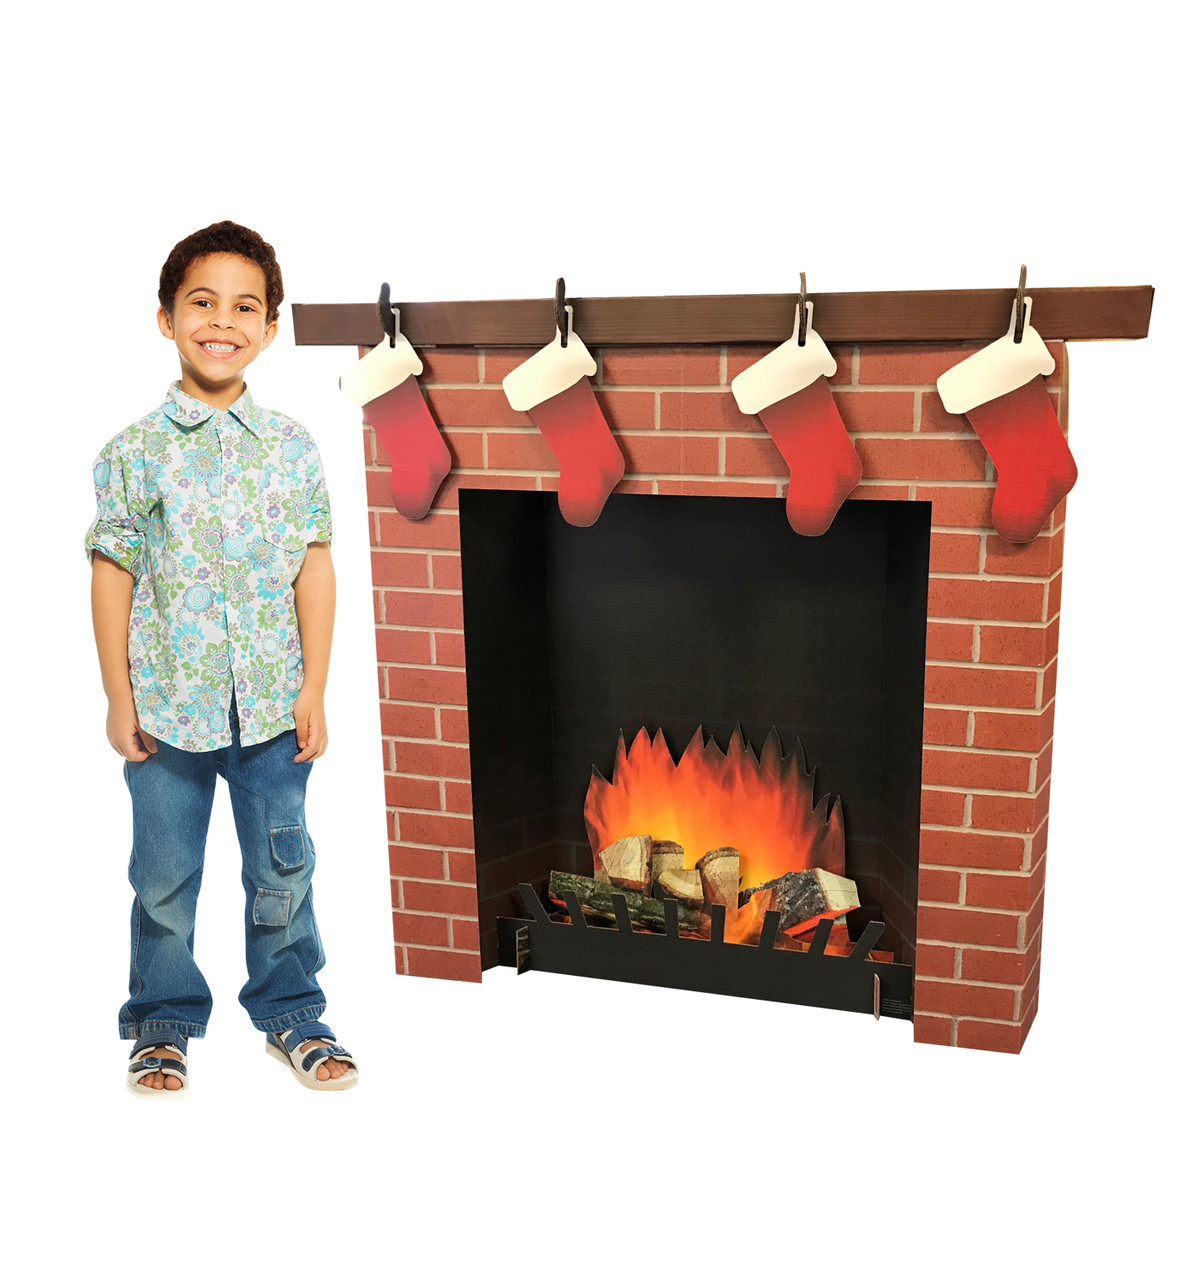 3D Brick Fireplace Life-Size Cardboard Cutout | Chirstmas Decor